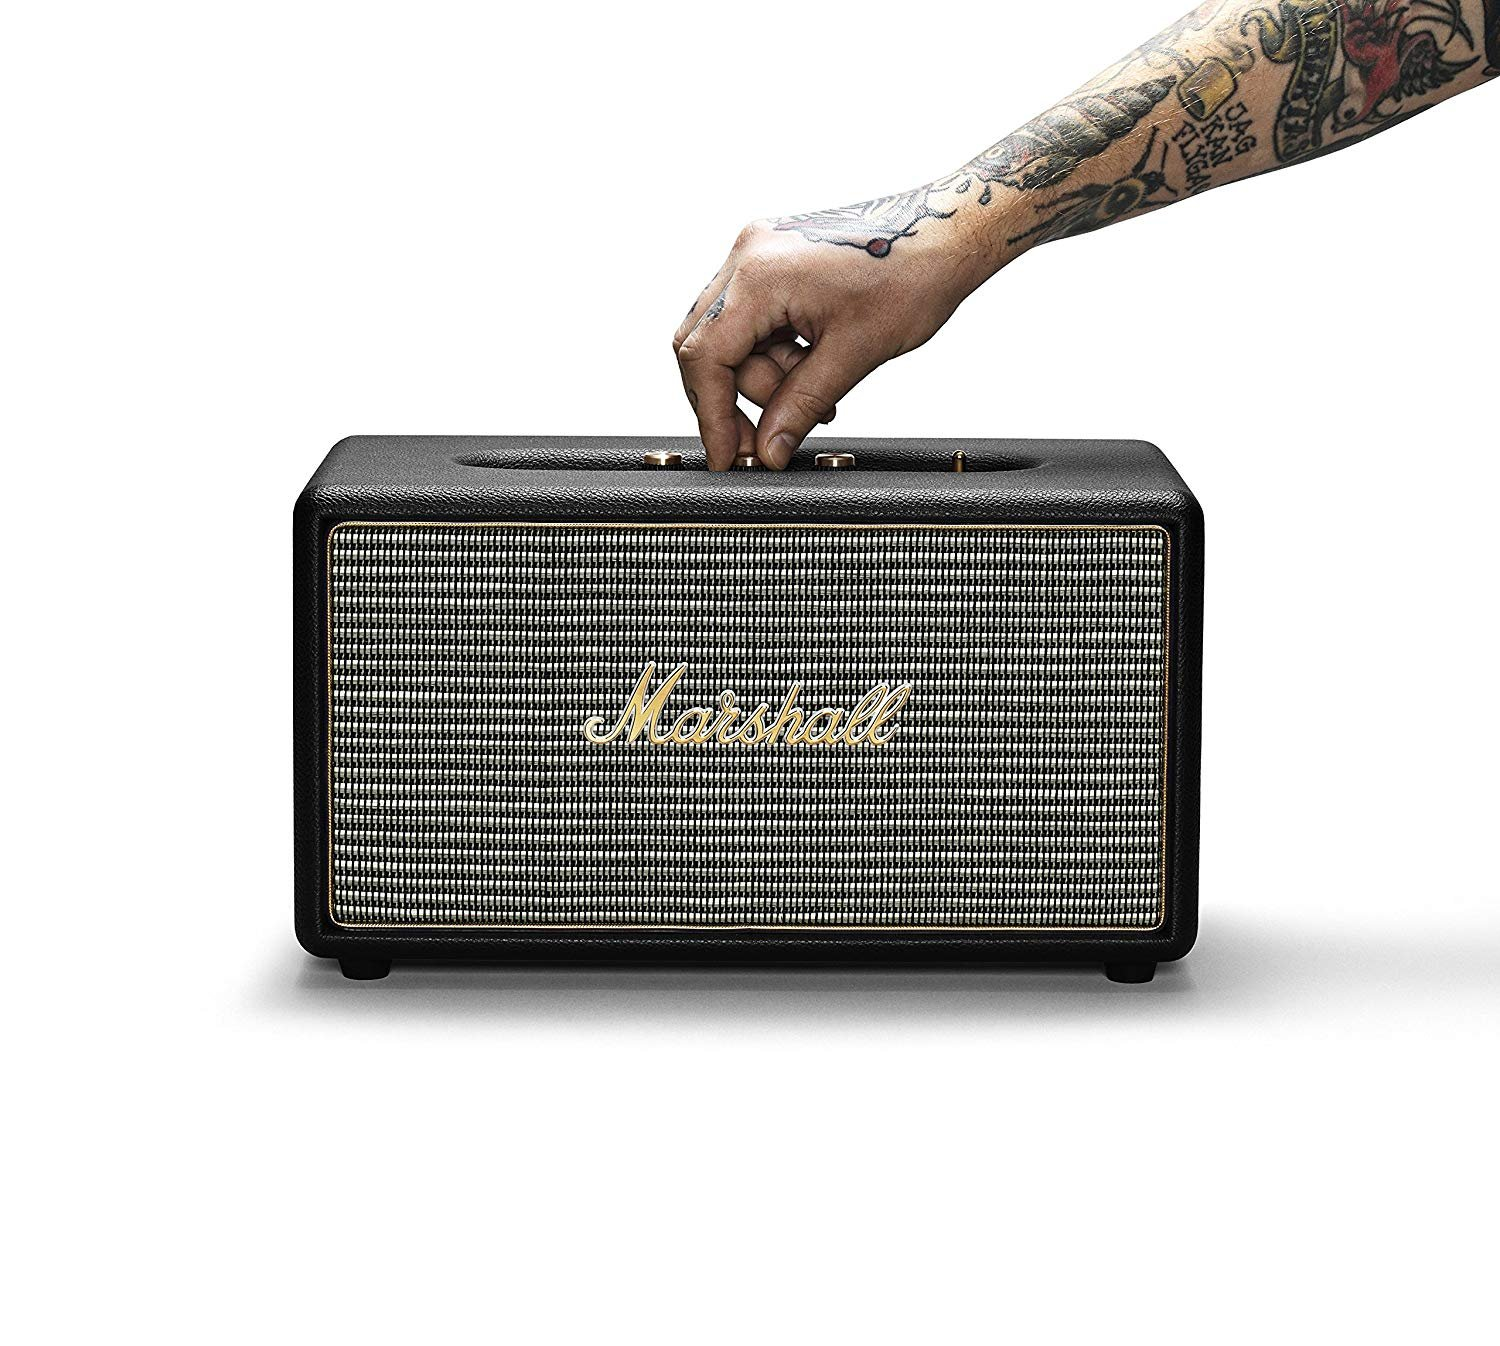 This Marshall Stanmore Bluetooth Speaker Is 51% off Today as a Pre-Amazon Prime Day Deal